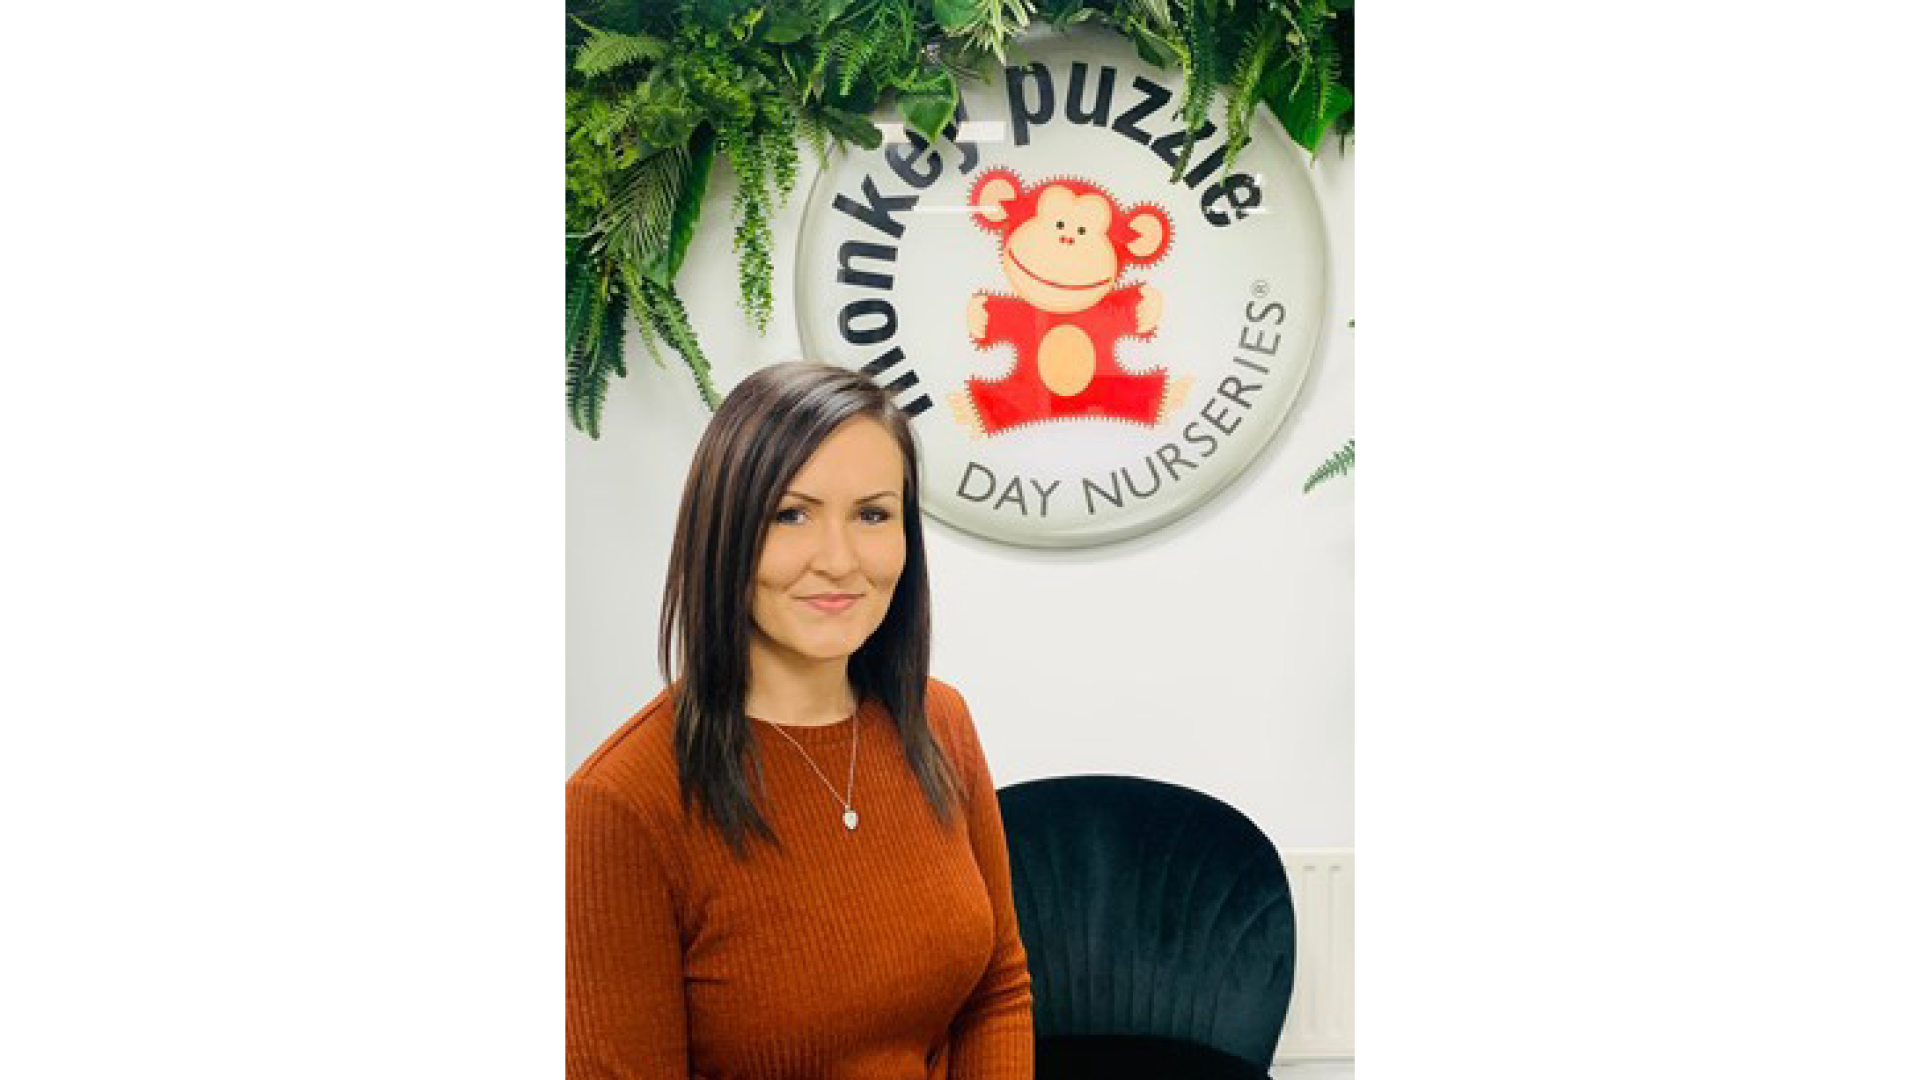 Monkey Puzzle appoints new Head of Operations.